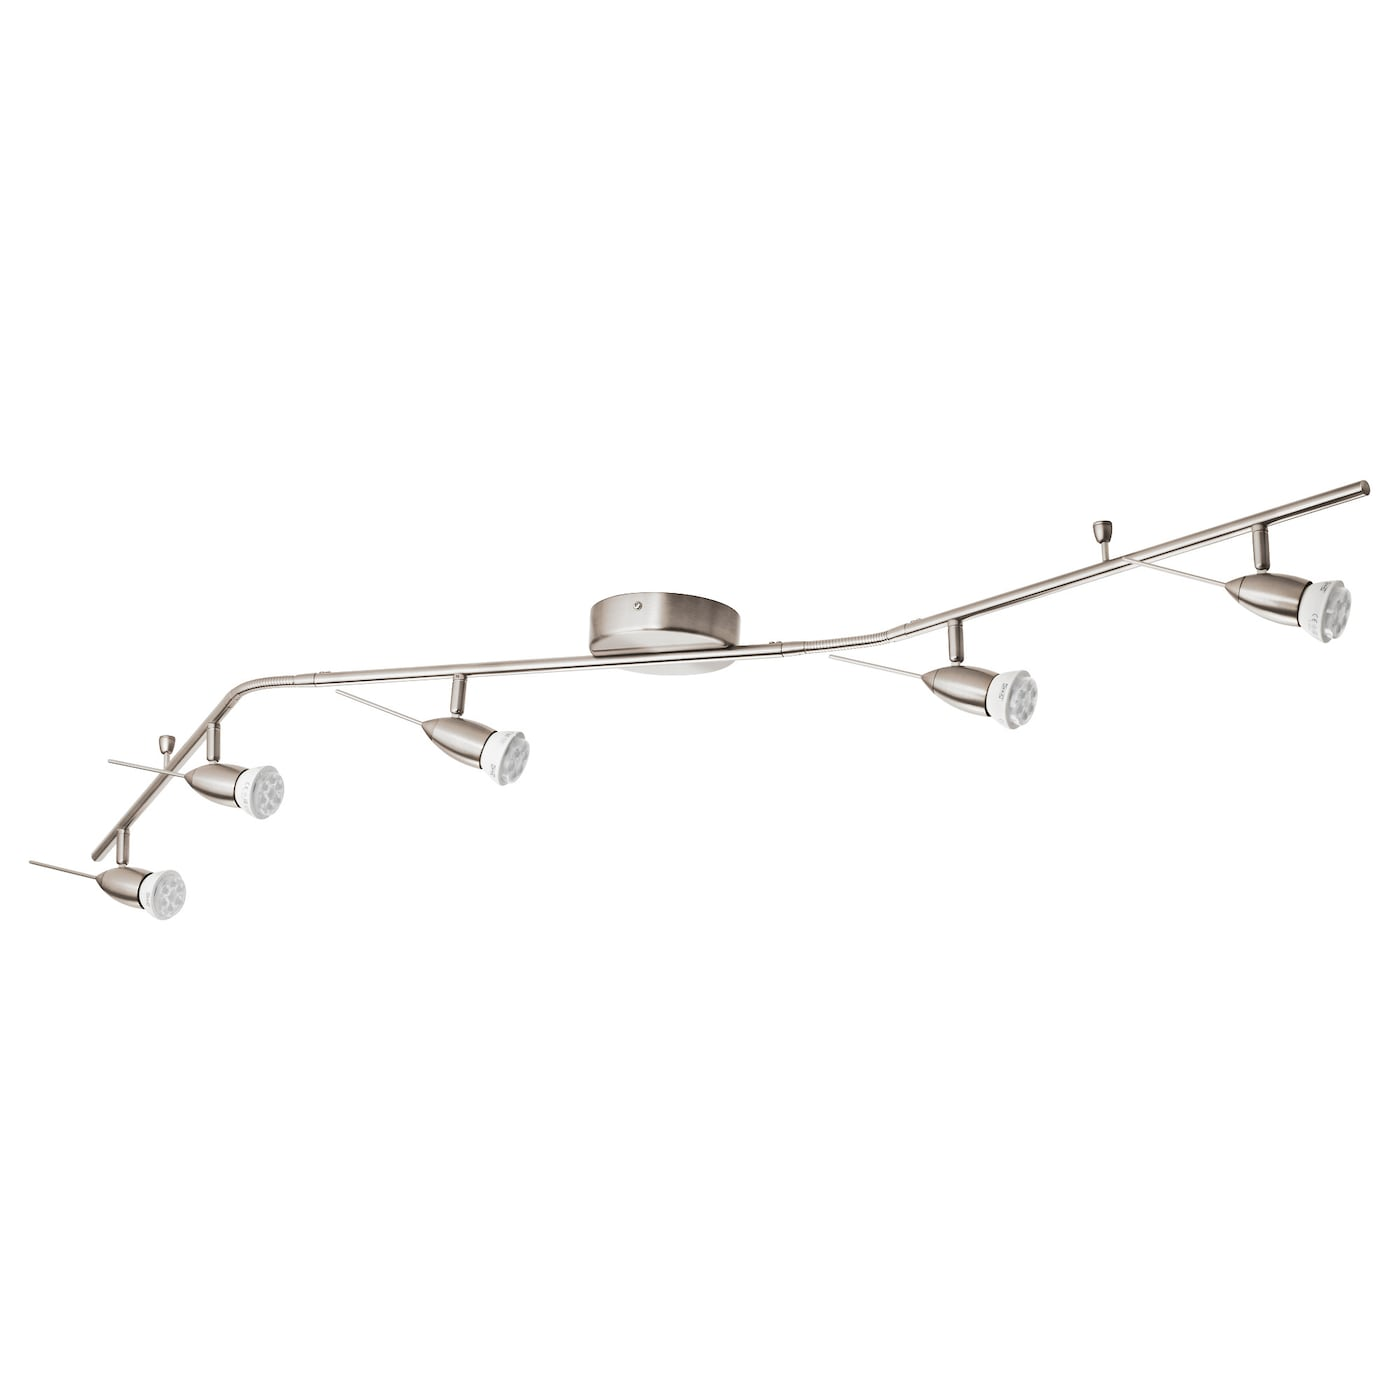 Ceiling lights led ceiling lights ikea ikea husinge ceiling track 5 spots aloadofball Images